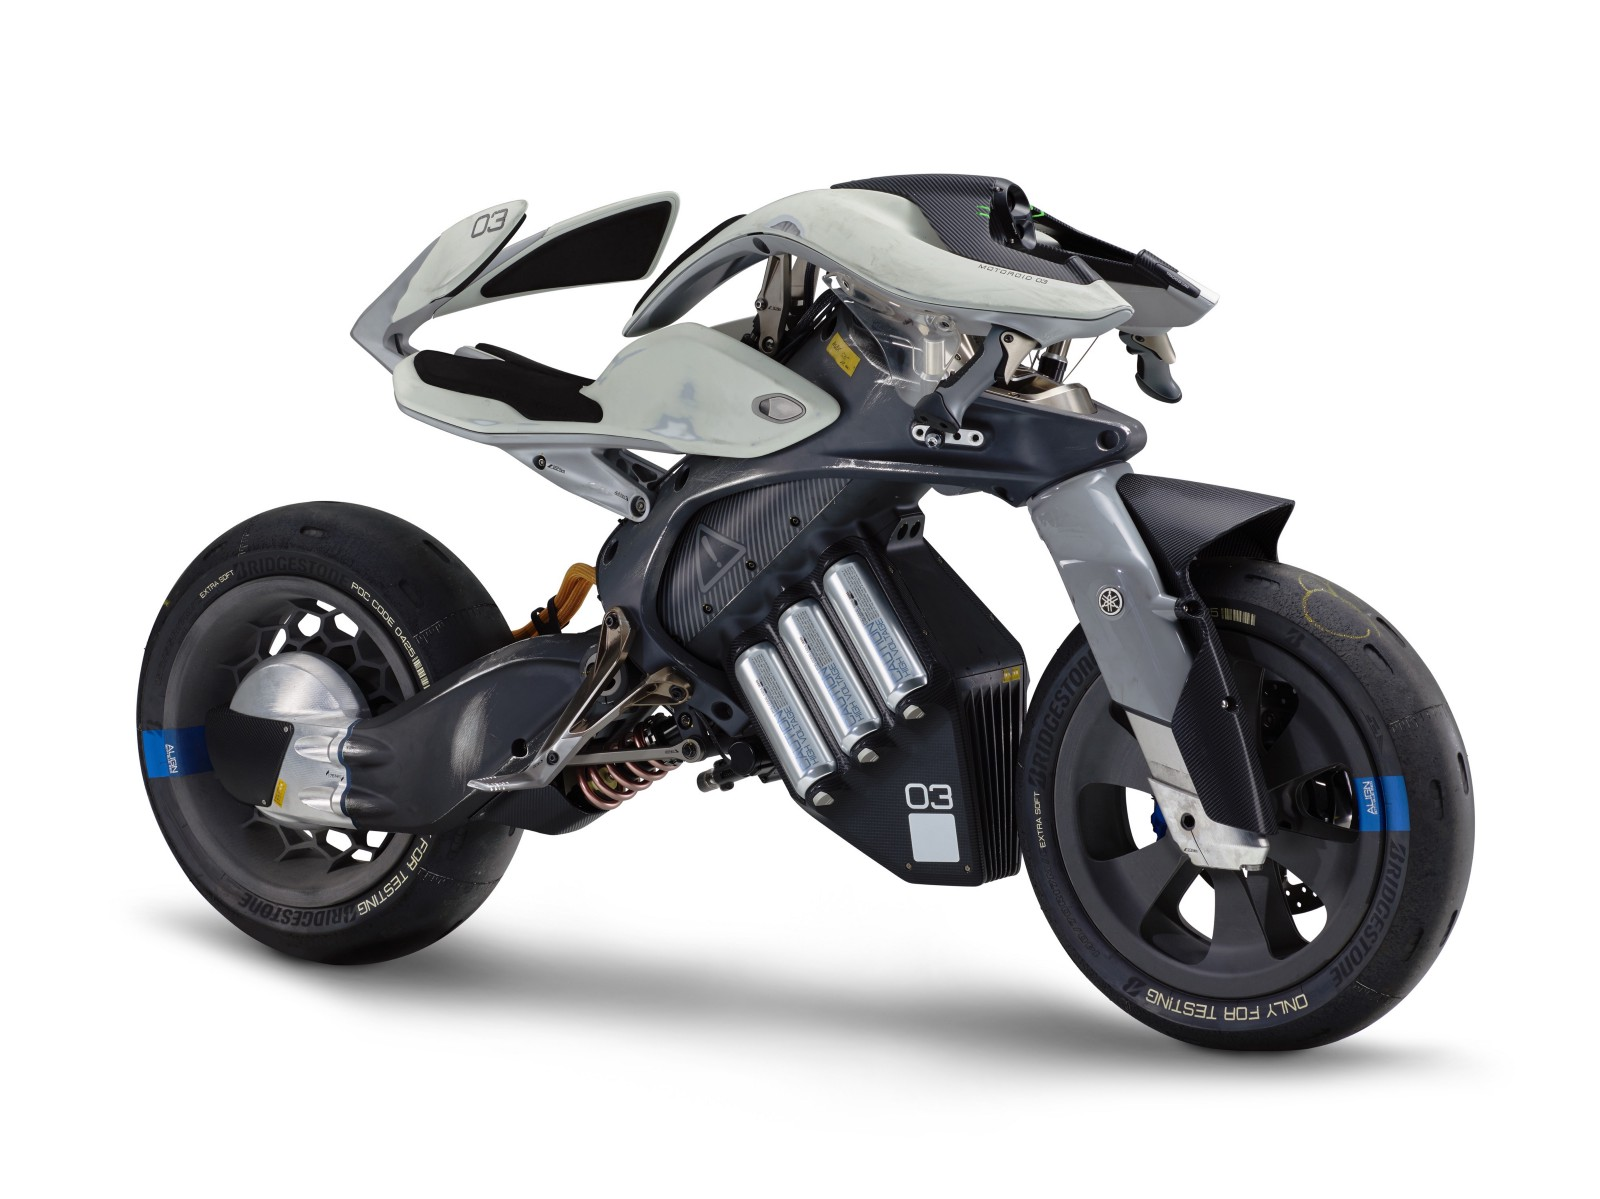 yamaha motorcycle photo  Yamaha Sets the Pace for Self-Driving Motorcycles – SyncedReview ...